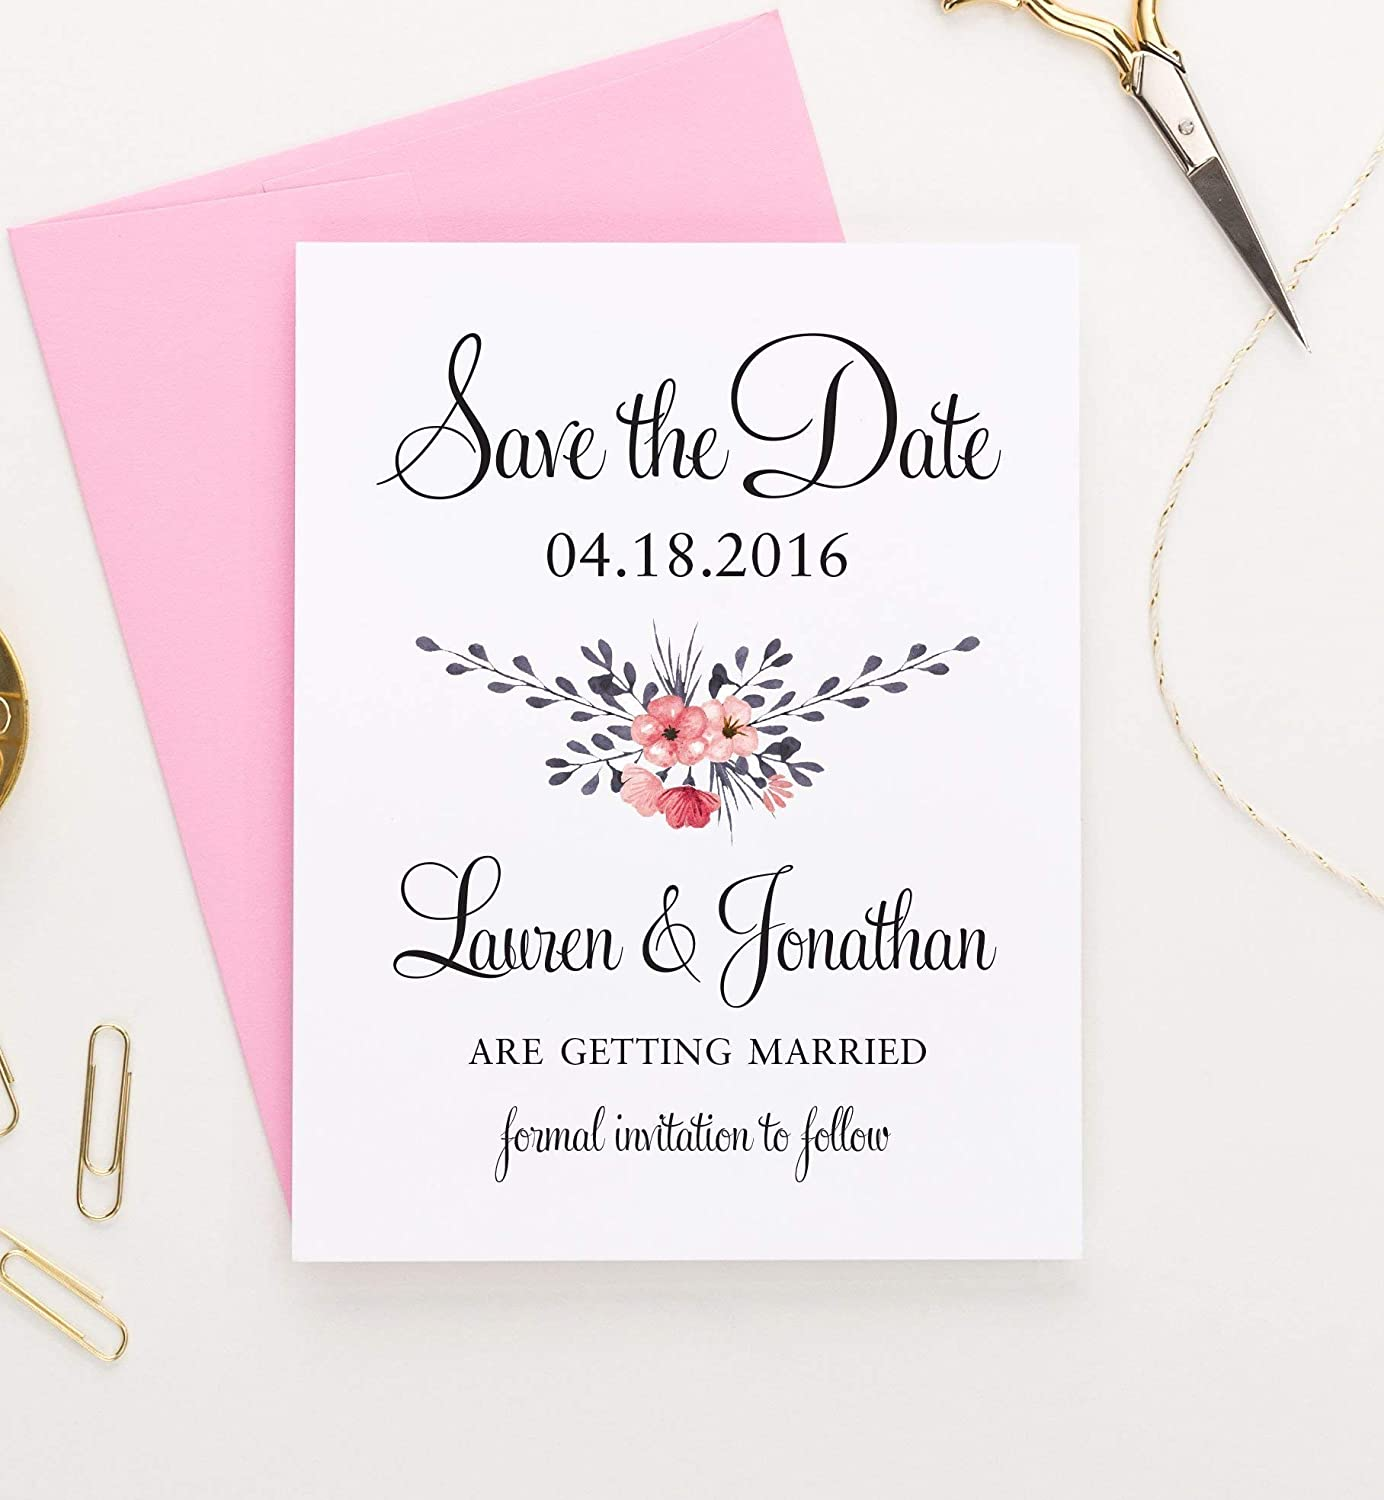 Wedding Save the Date Gold Save the Date Card Save the Date Card Personalized Save the Date Photo Gold Save the Date Photo Wedding Card